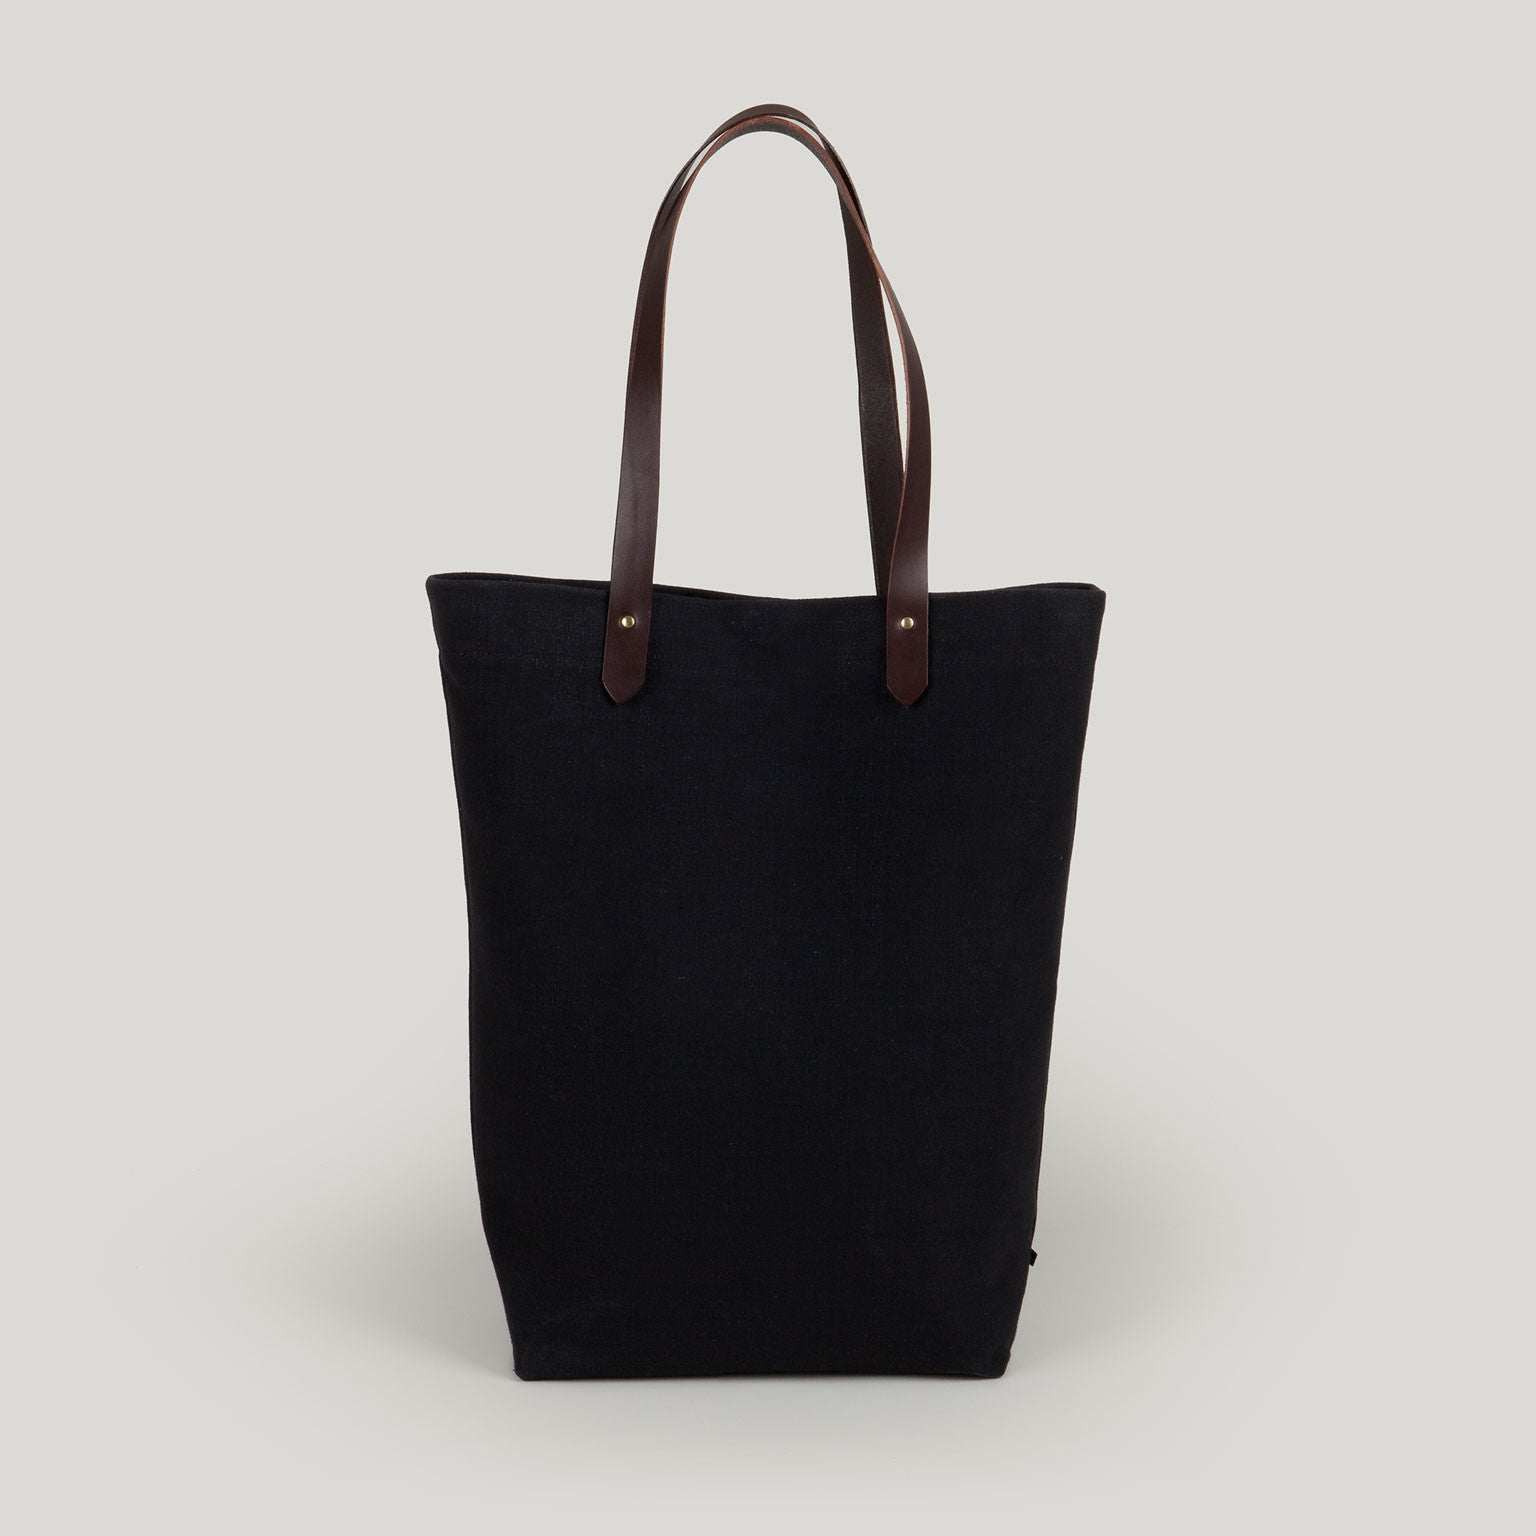 KITTY tote - black